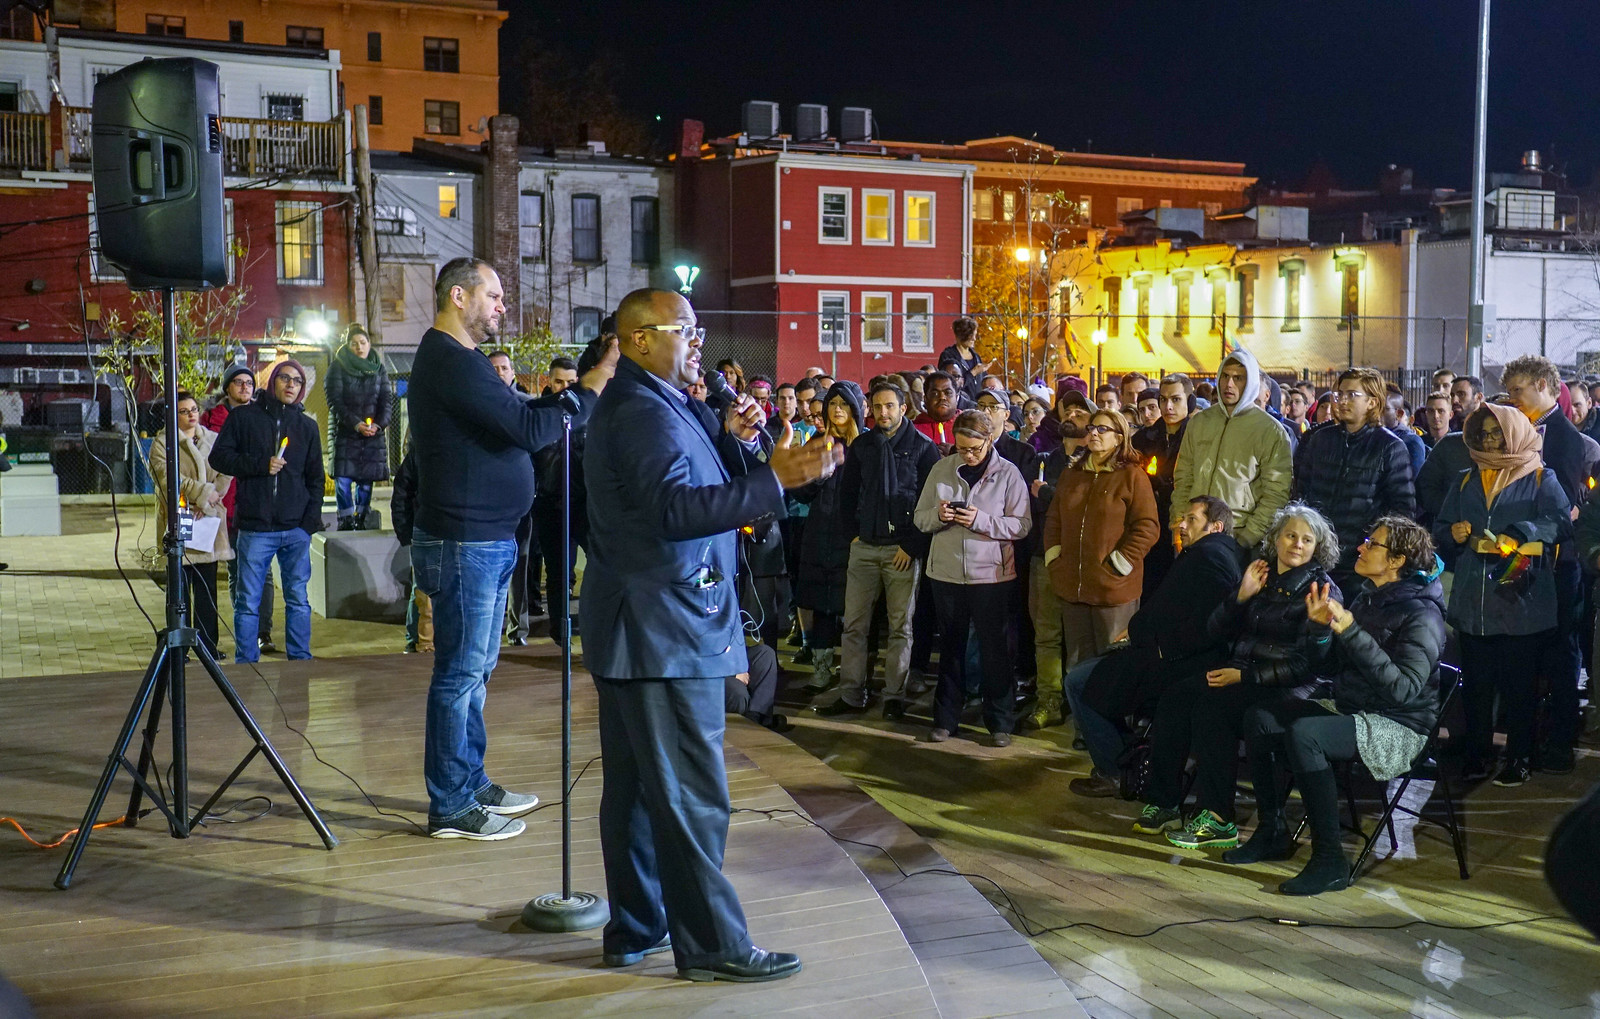 2018.04.19 A Vigil Against Violence, Washington, DC USA 01407